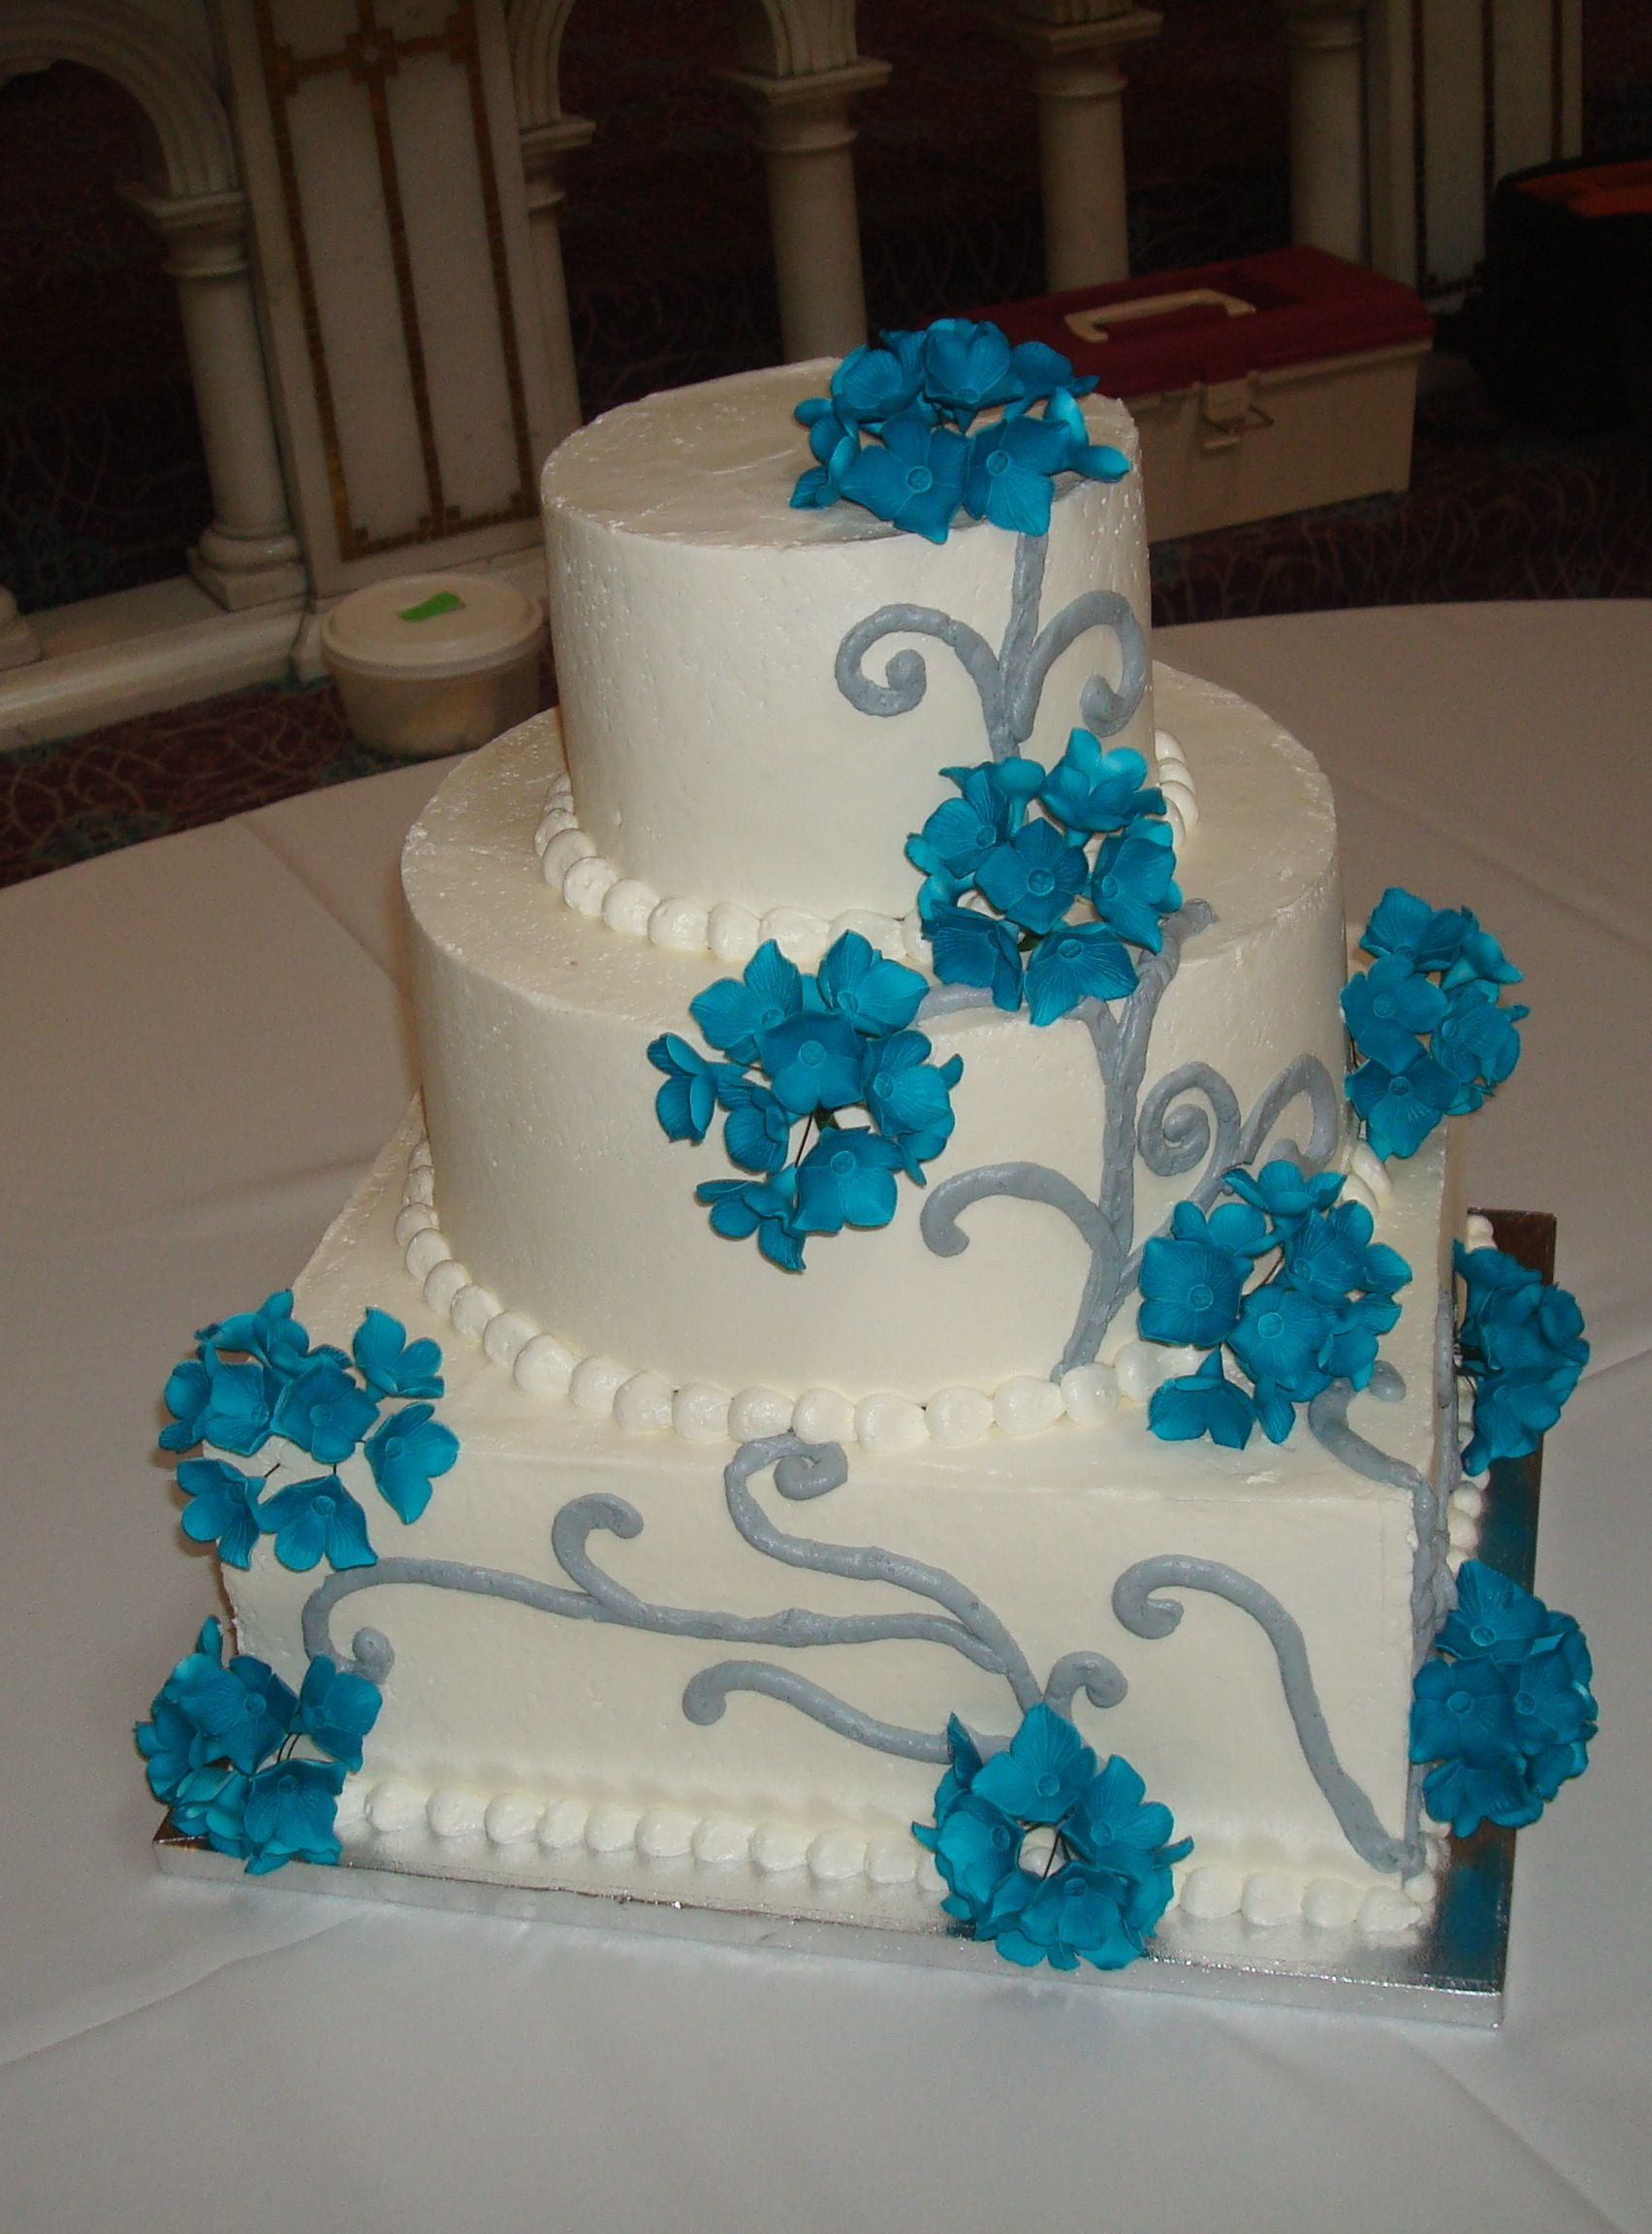 Traditional wedding decor blue and white  White  tier wedding cake with blue flowers  Weddings  Pinterest